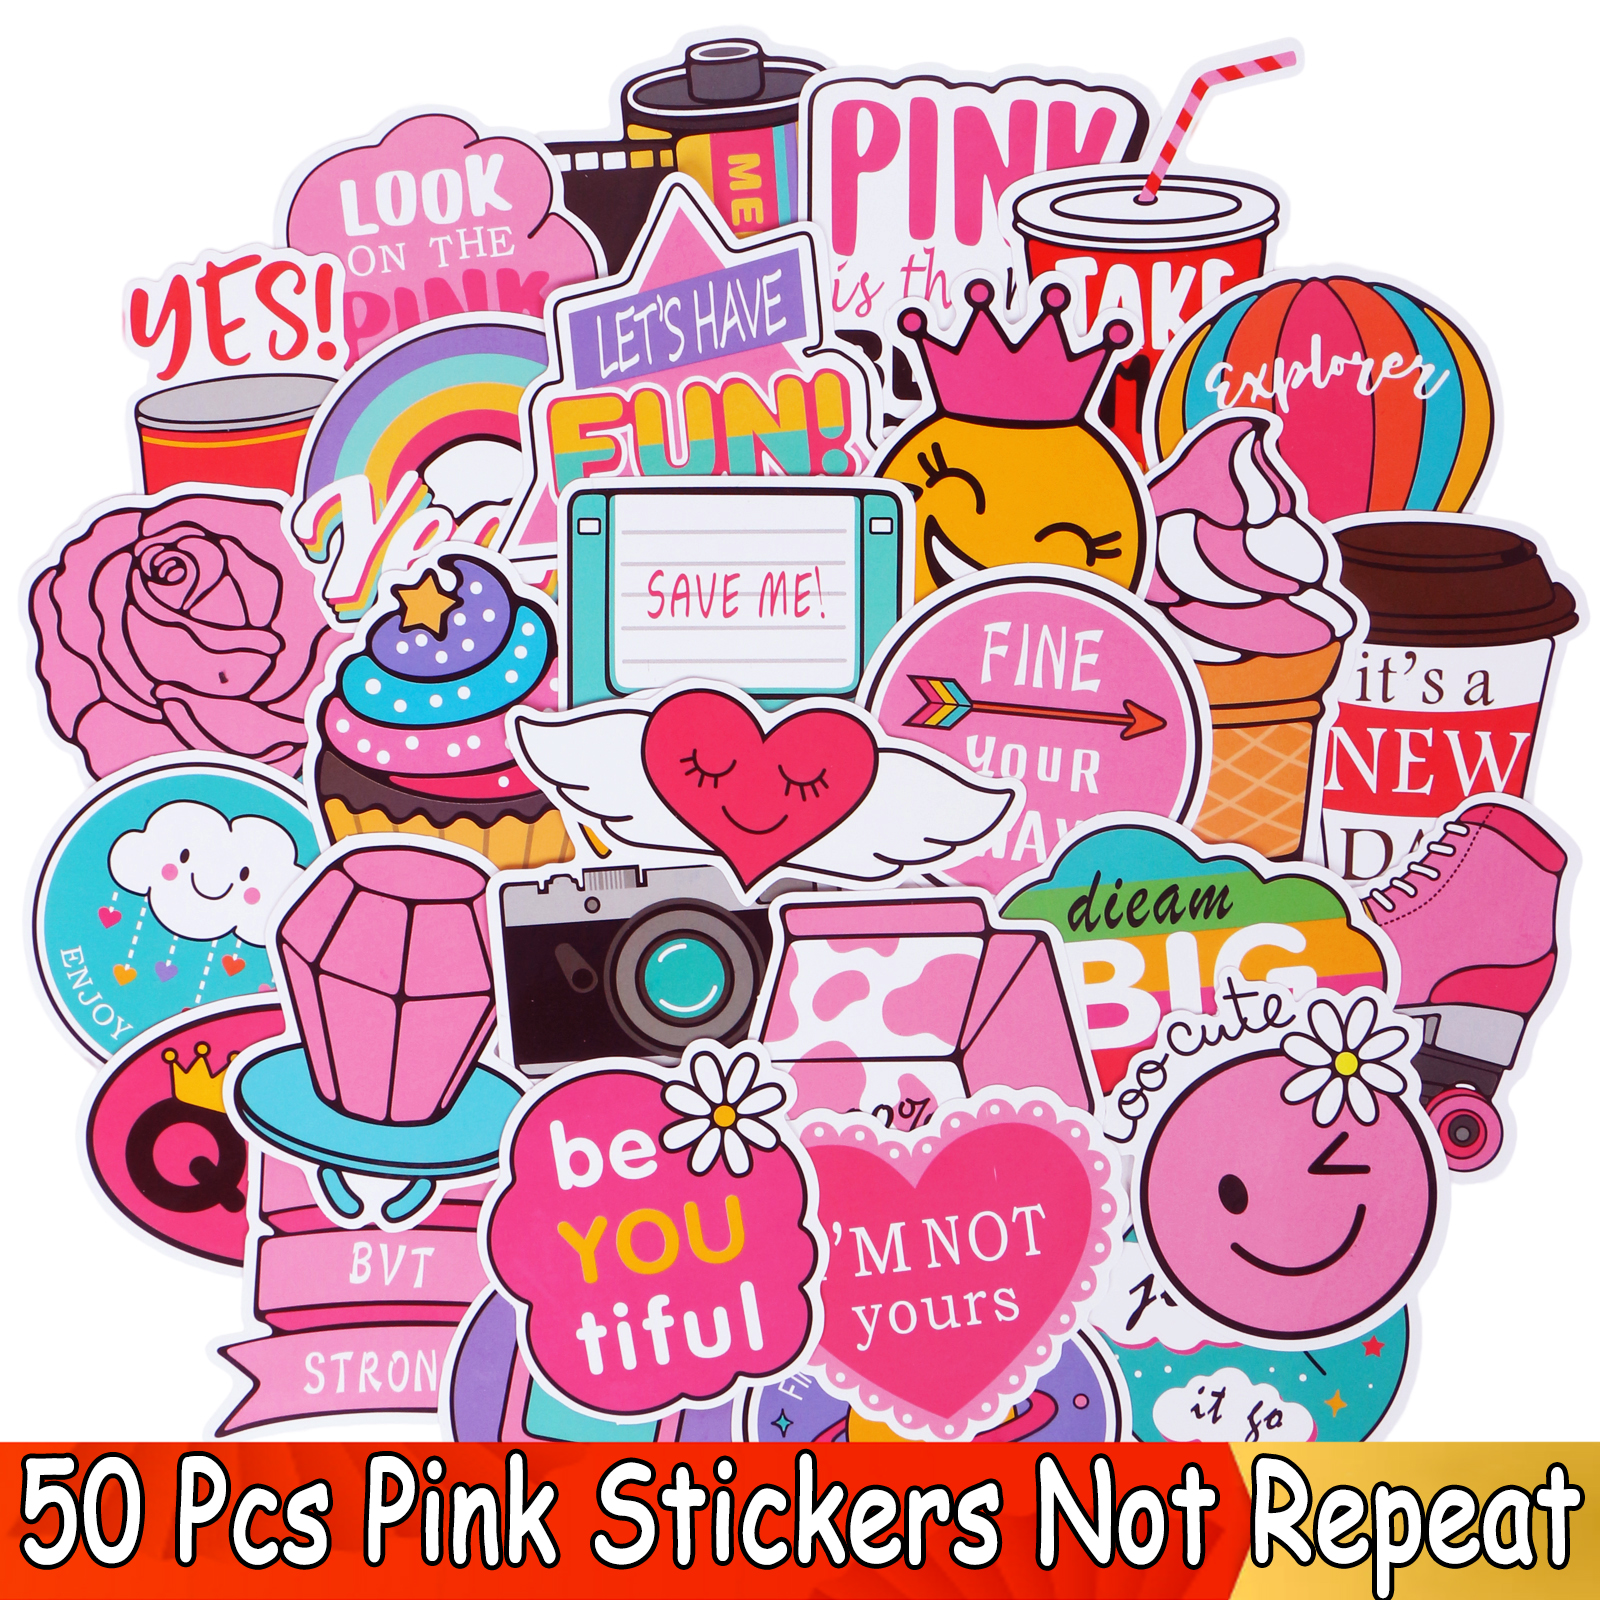 50 PCS Pink Color Stickers Cartoon Funny JDM DIY Laptop Decals Kid's Skateboard Luggage Motor Bicycle Toy Car Waterproof Sticker